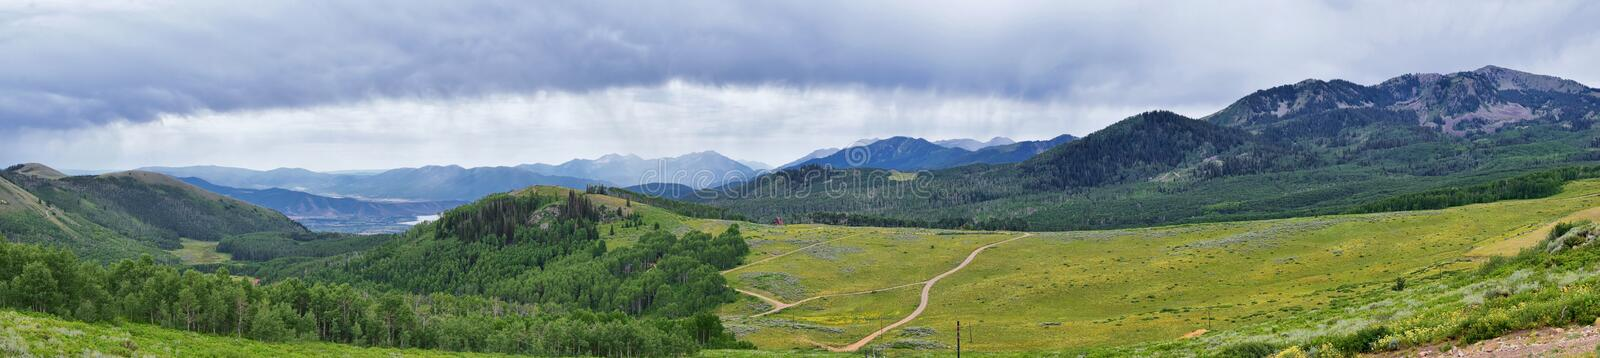 Guardsman Pass views of Panoramic Landscape of the Pass, Midway and Heber Valley along the Wasatch Front Rocky Mountains, Summer F. Orests, Clouds and Rainstorm stock photos